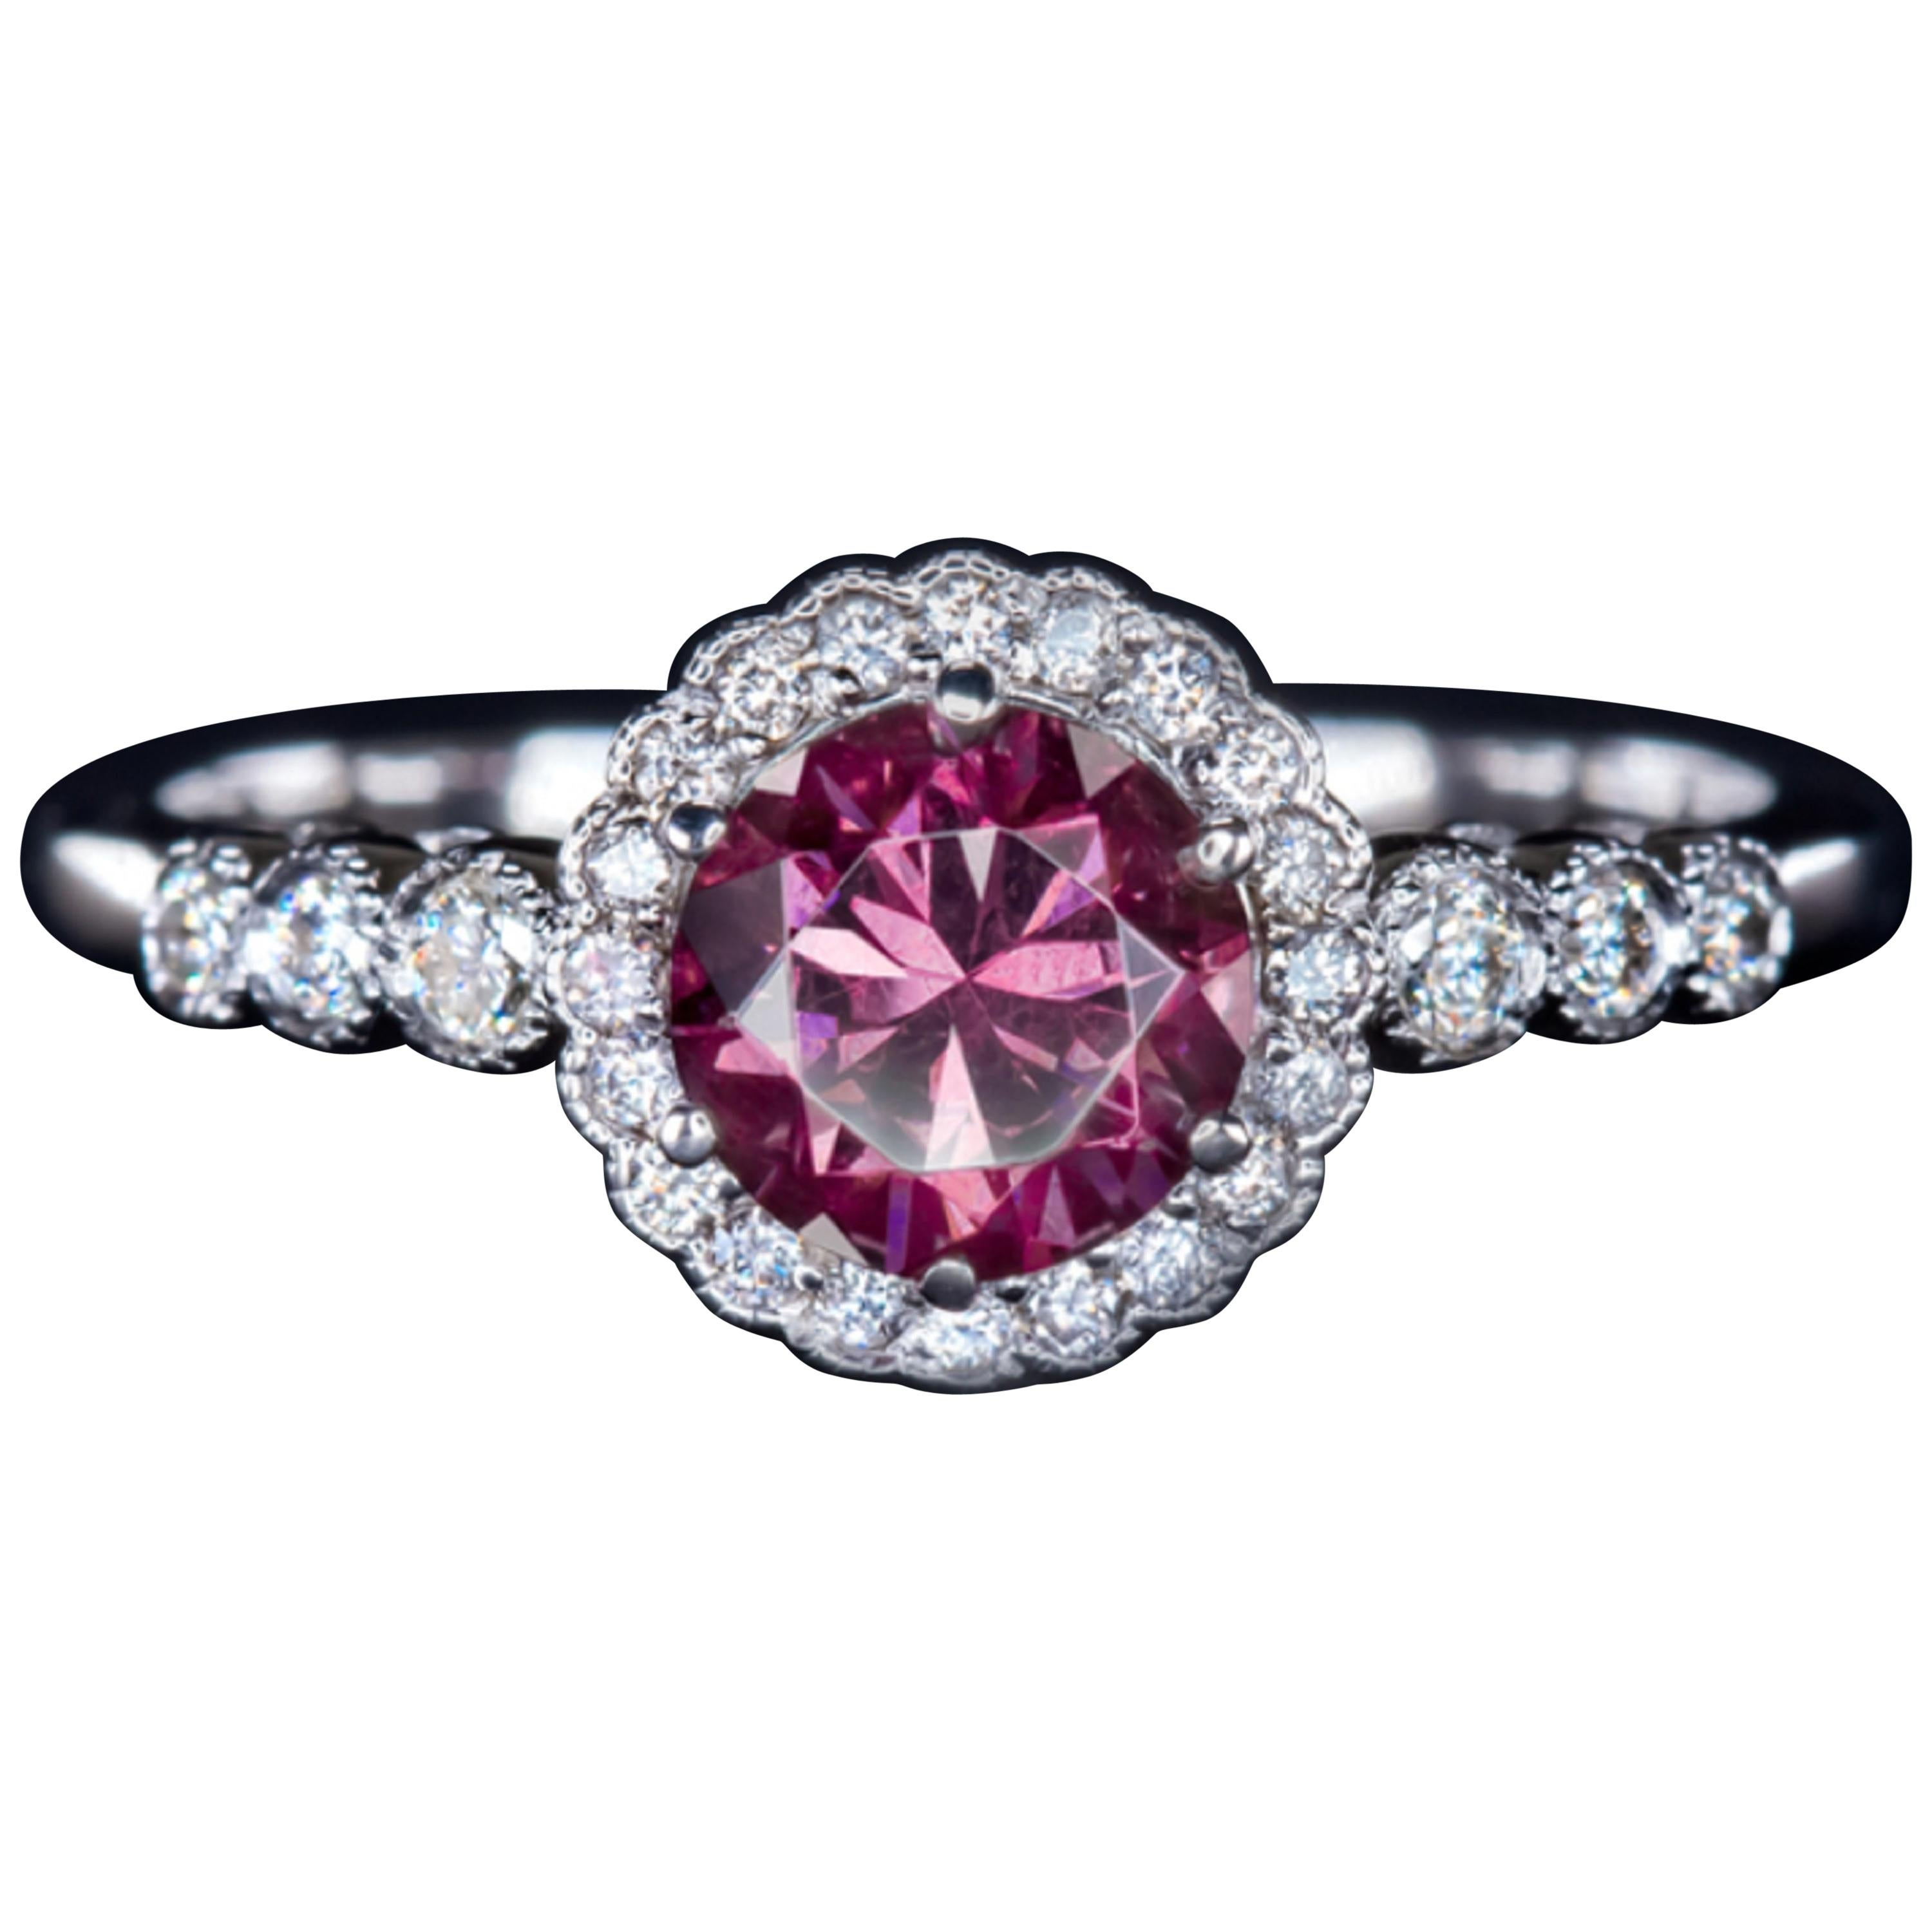 1.21 Carat Pink Rhodolite and Round Diamond White Gold Solitaire Ring